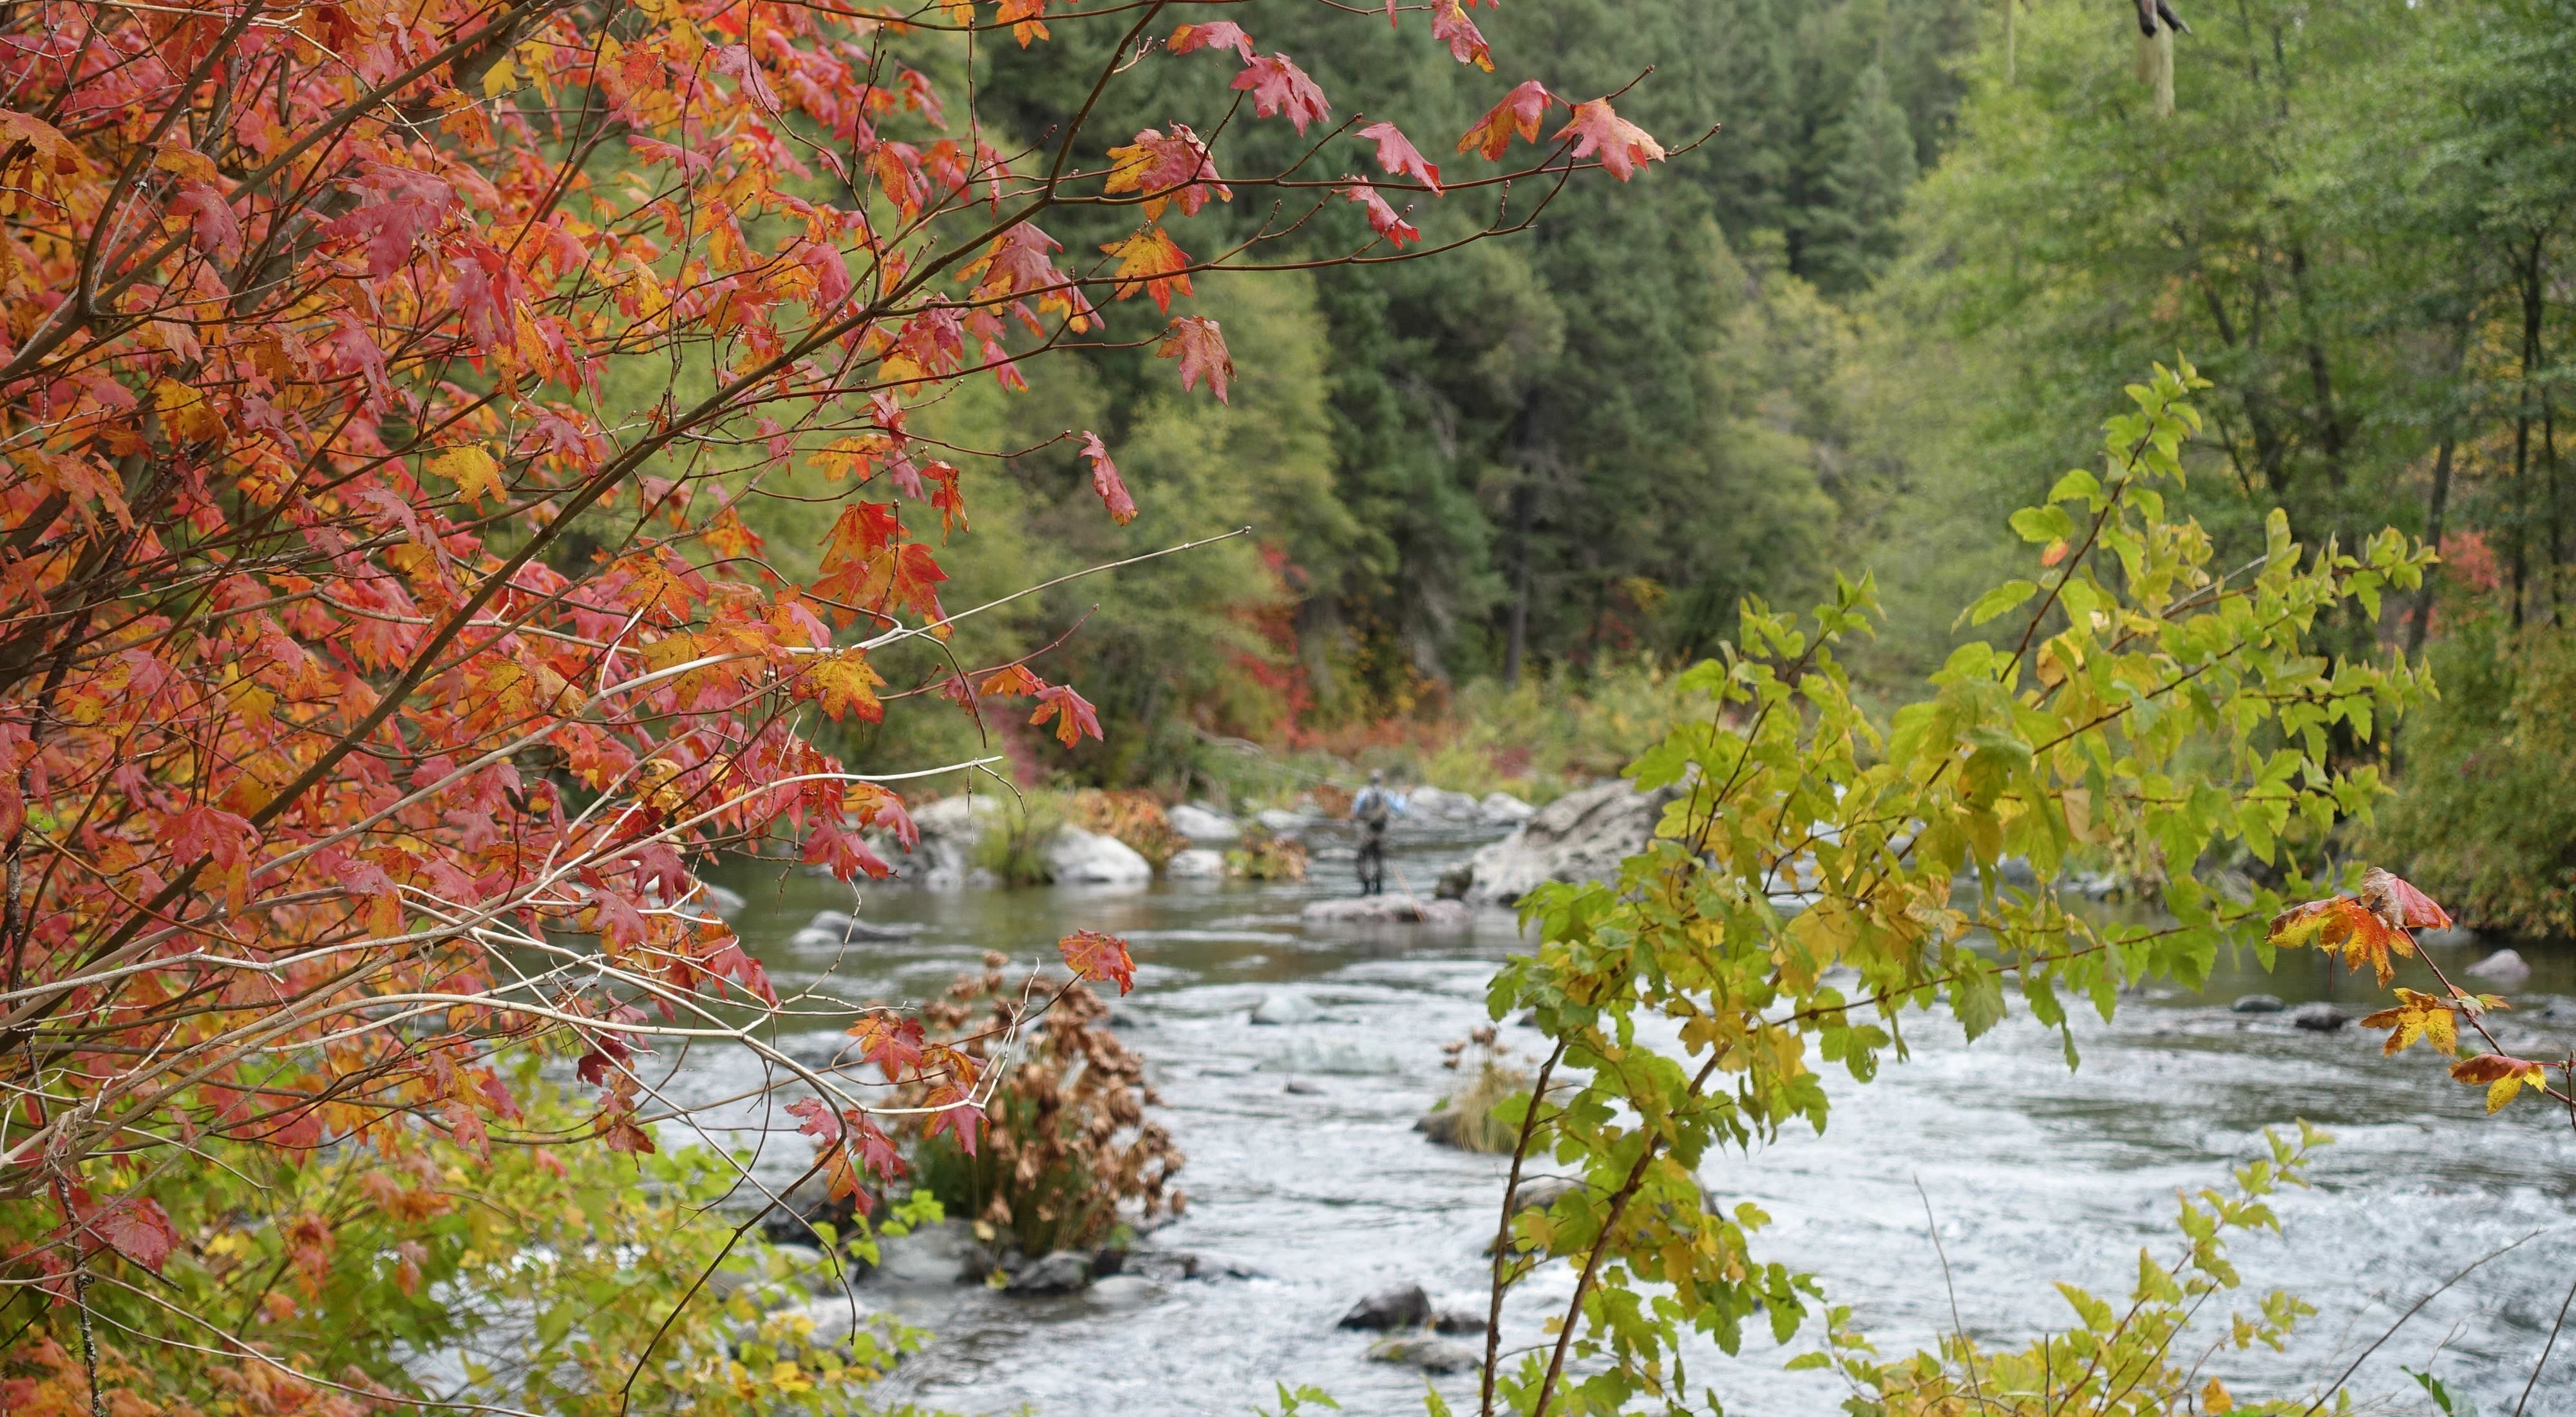 Fall foliage on trees on the banks of a river.